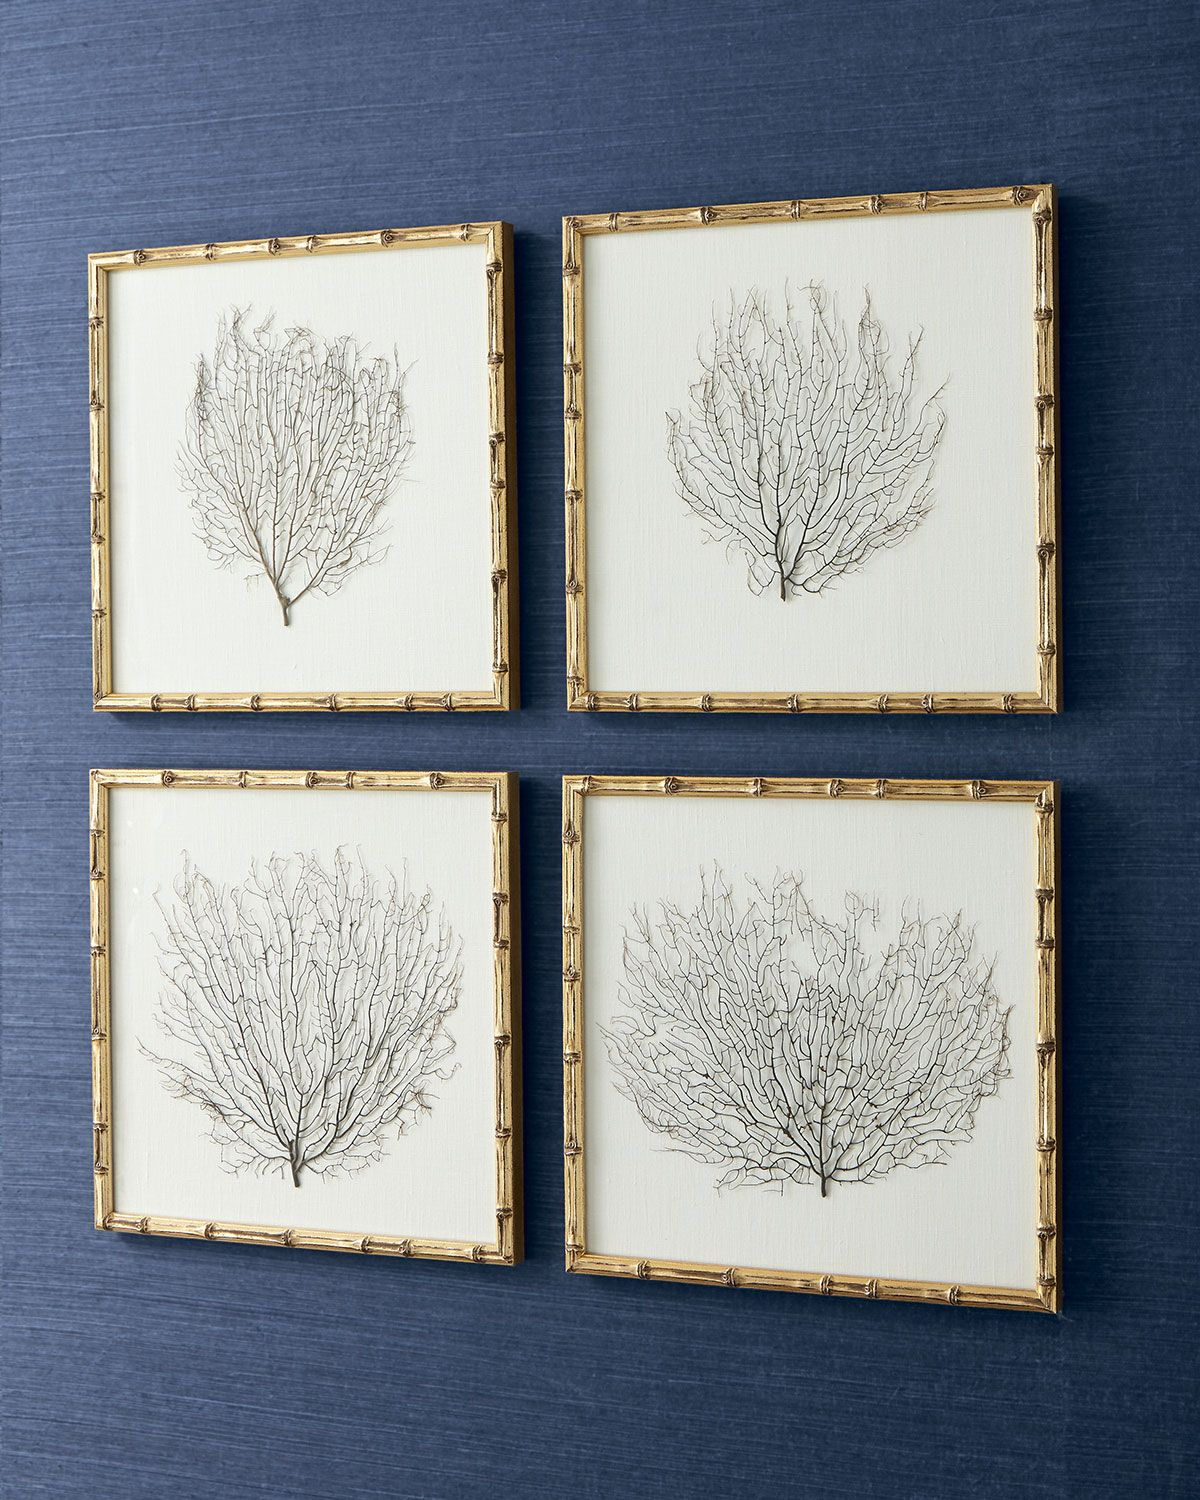 Framed Sea Fans, 4-Piece Set | Fans, Top designers and Free shipping